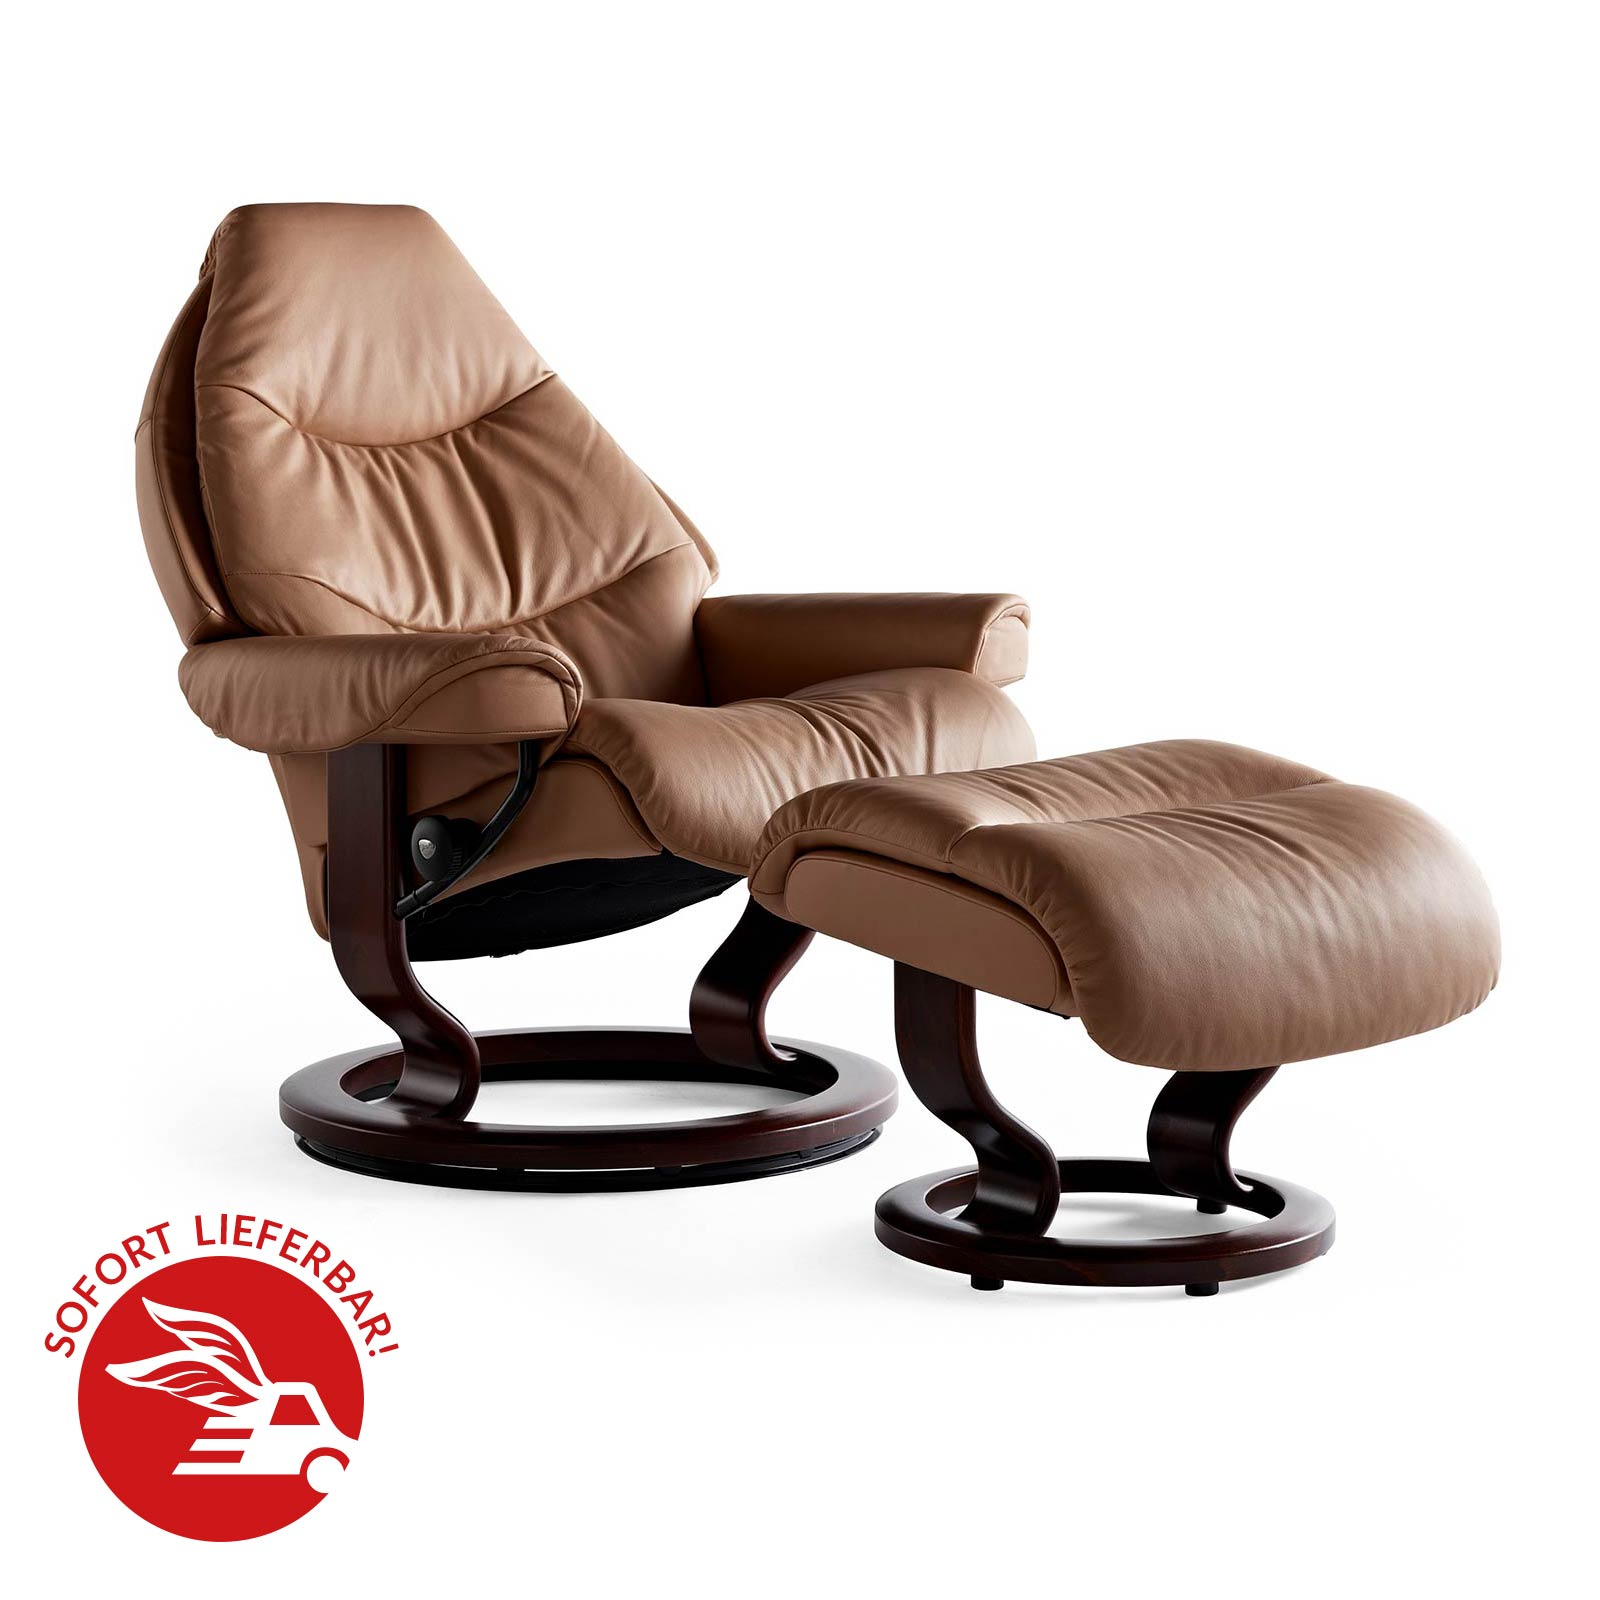 angebot stressless sessel voyager m mit hocker taube. Black Bedroom Furniture Sets. Home Design Ideas